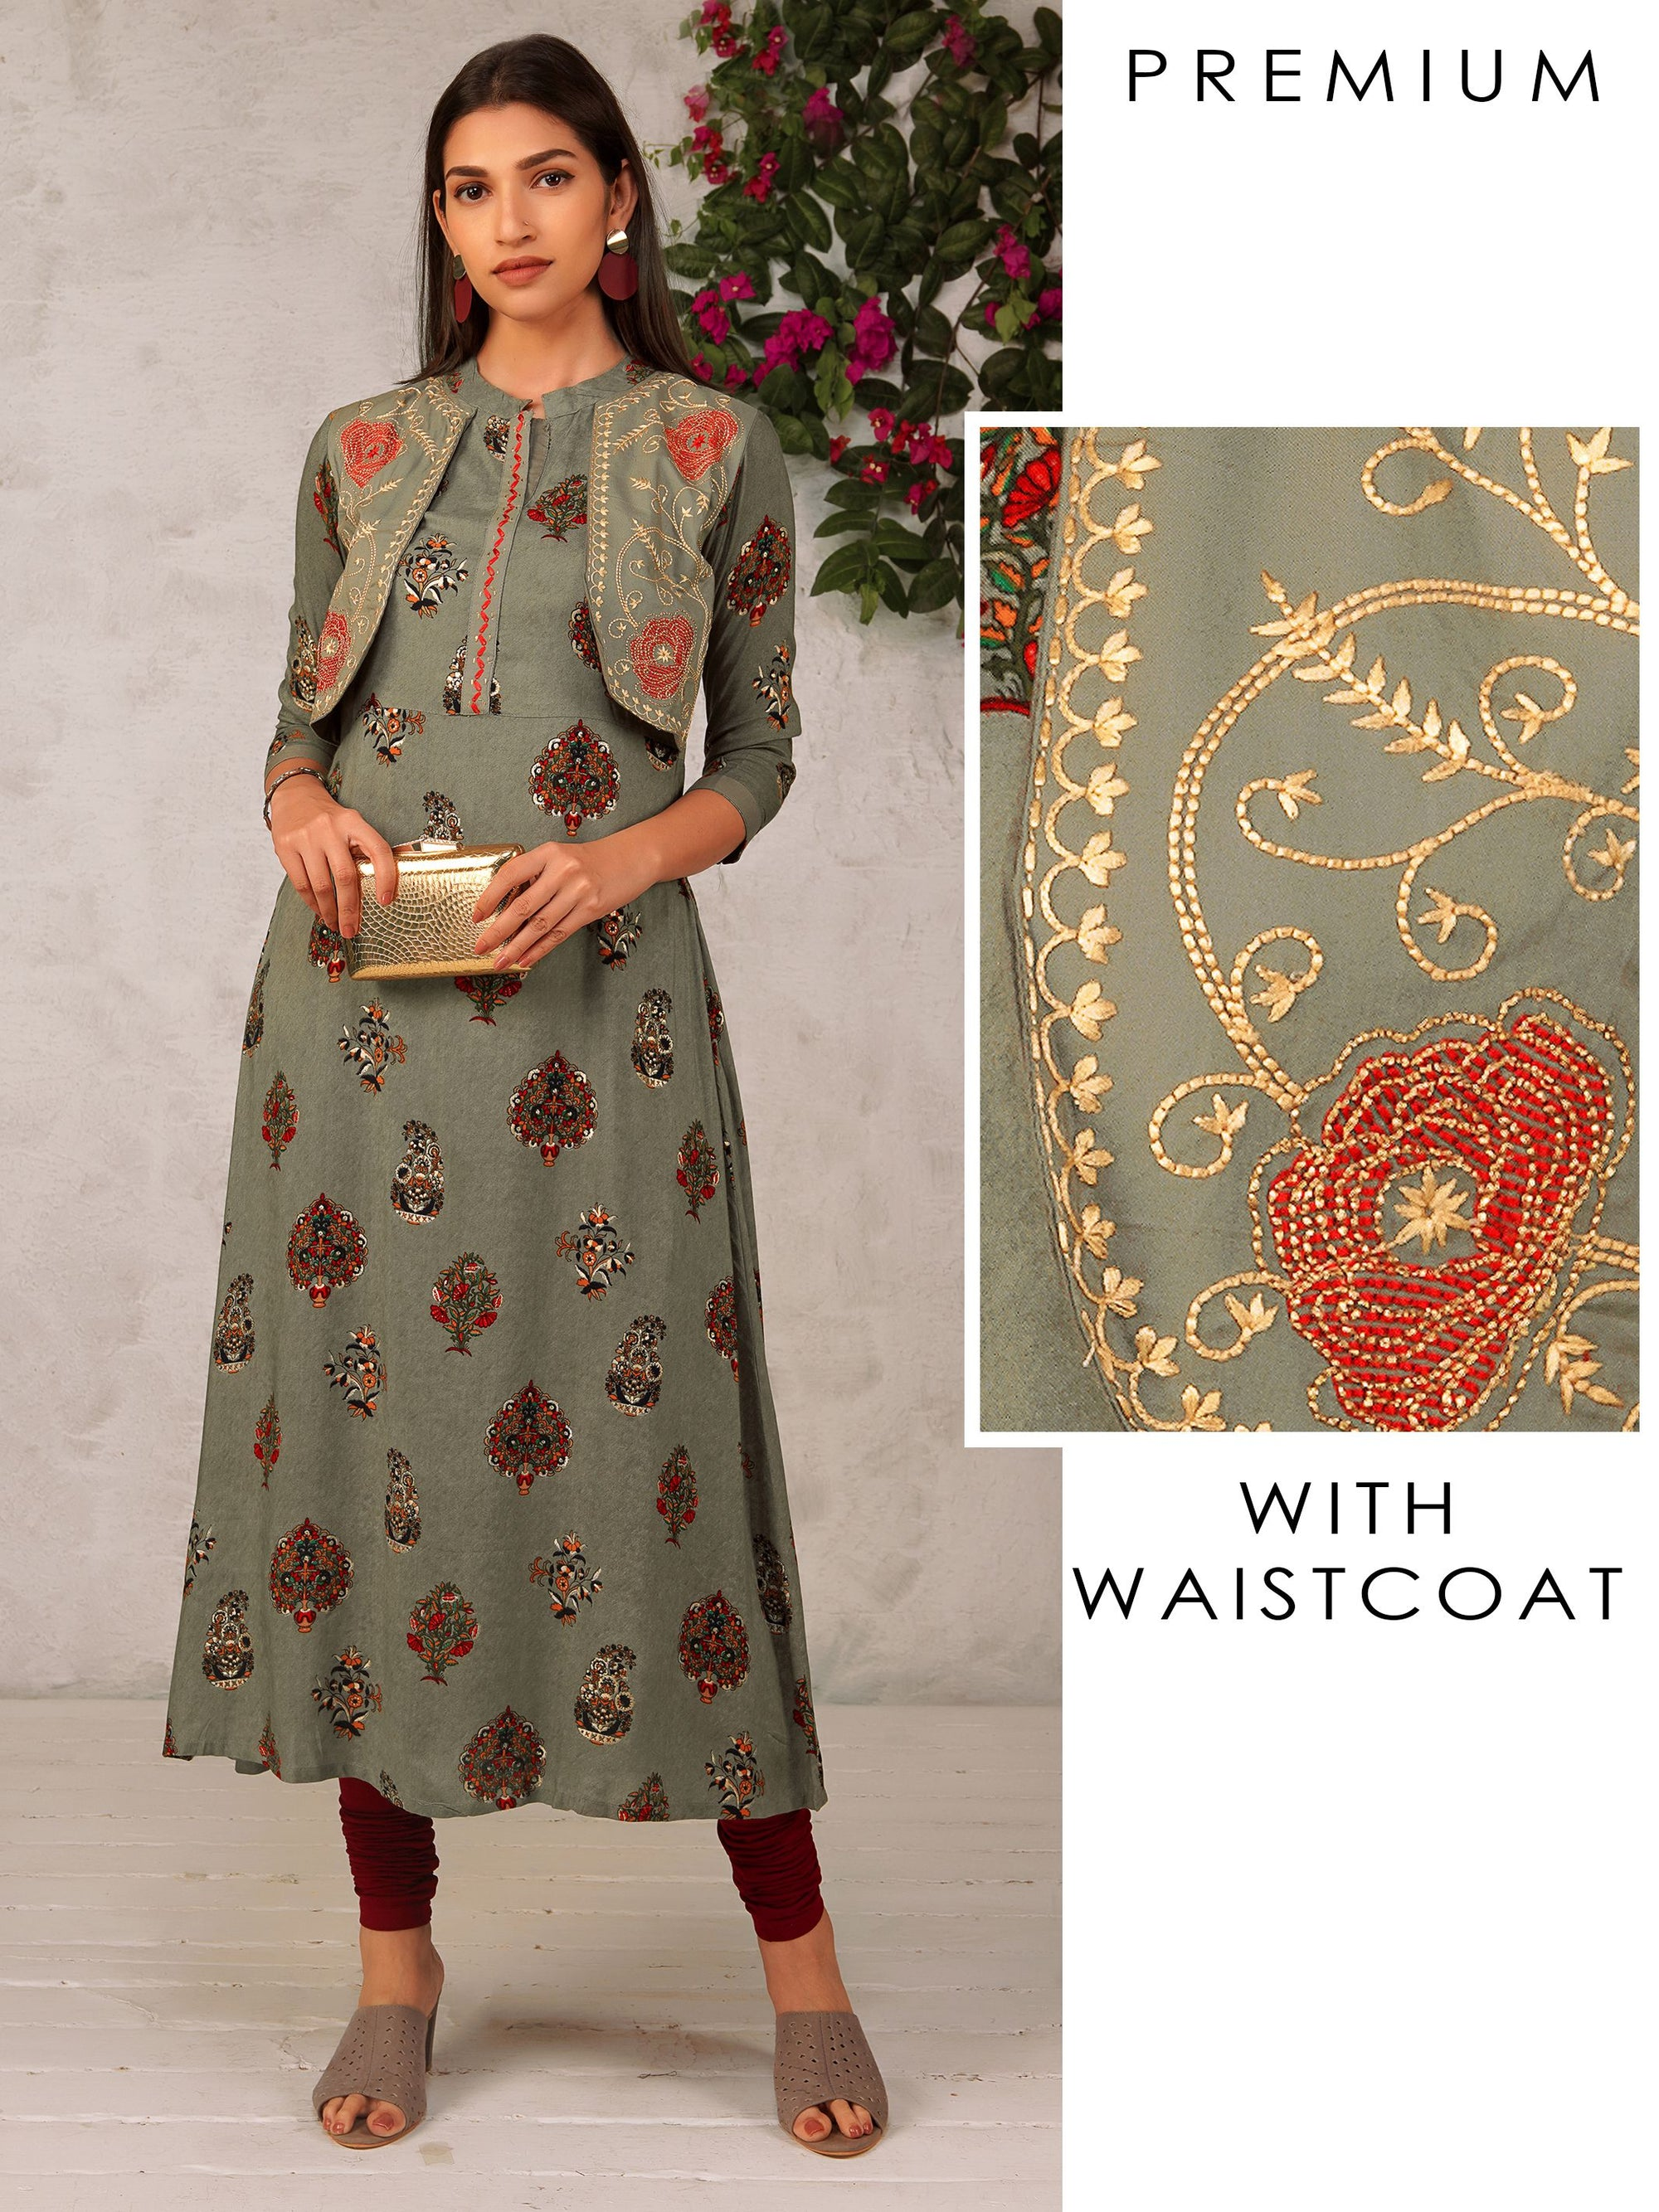 Flower Vase Printed Kurta And Embroidered Attached Jacket